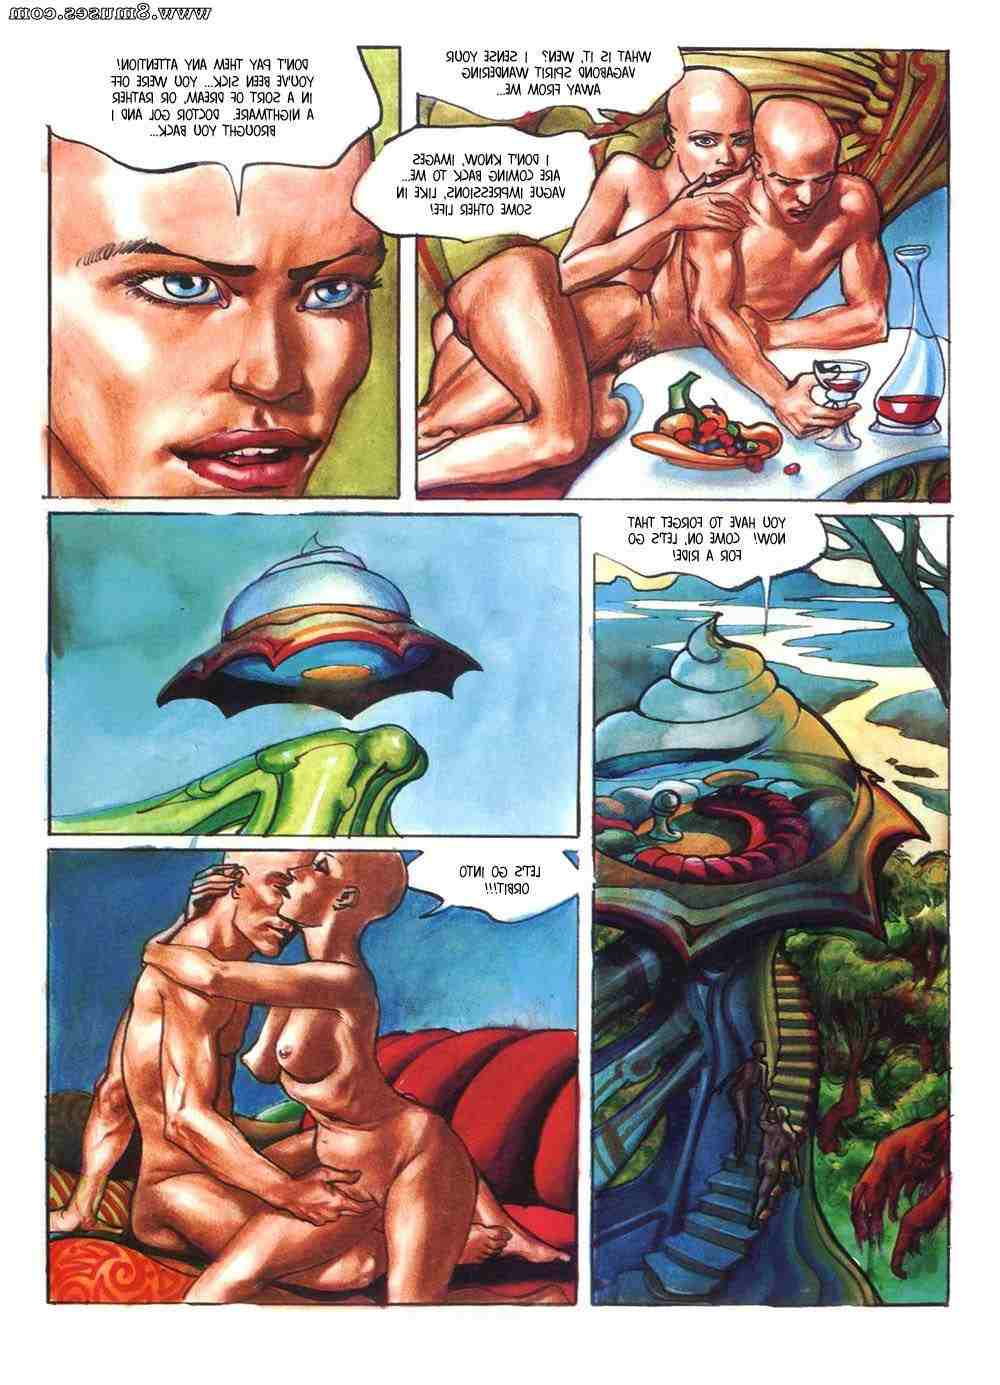 Various-Authors/Starzo/Mike-Mercury Mike_Mercury__8muses_-_Sex_and_Porn_Comics_39.jpg